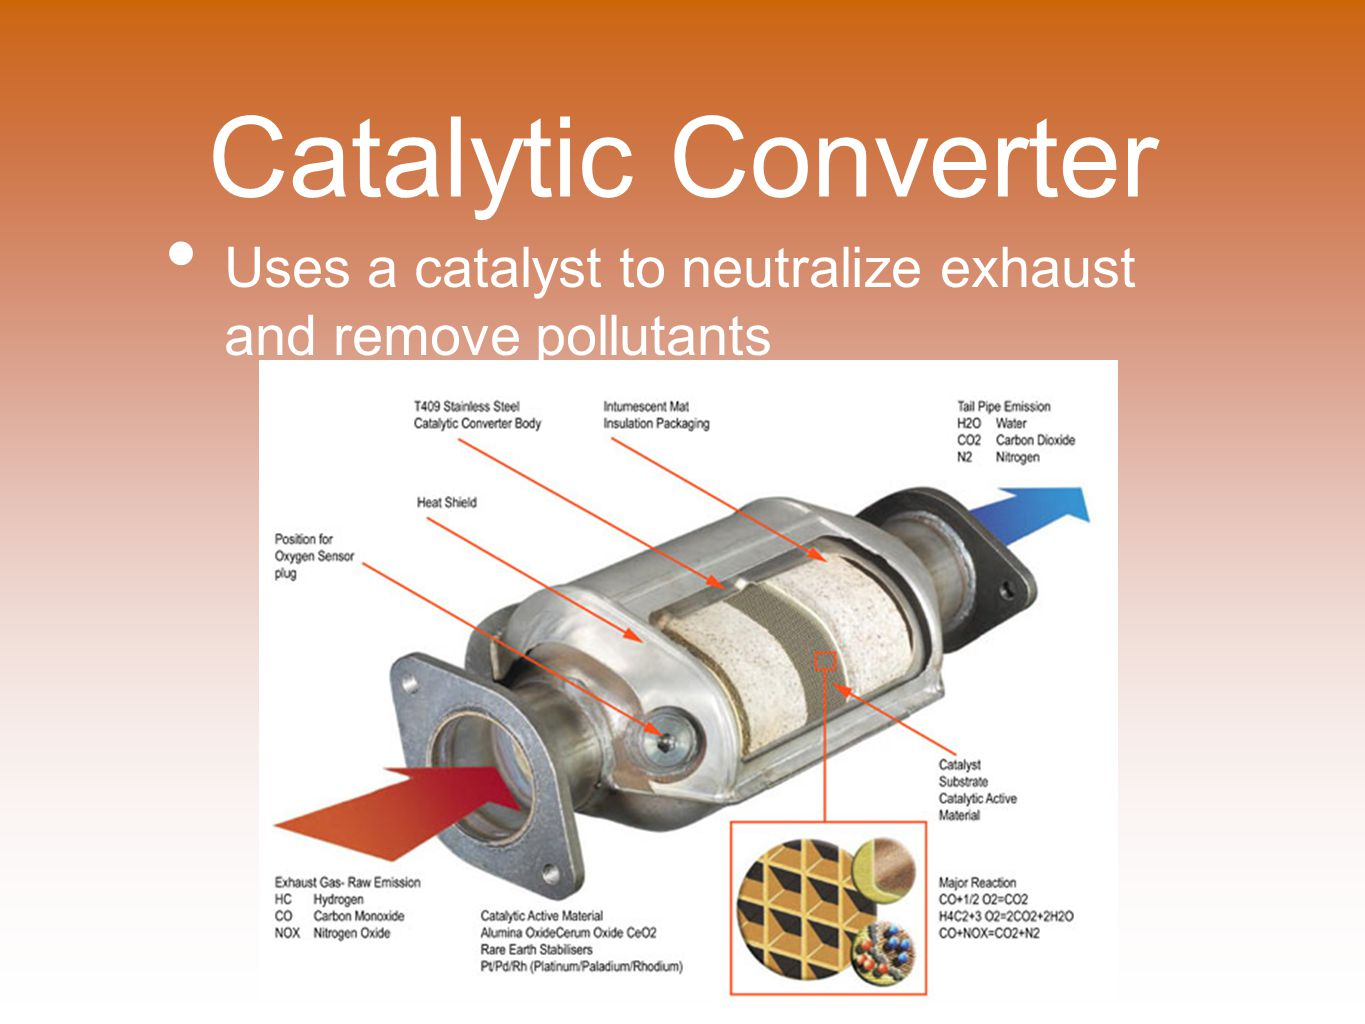 Uses a catalyst to neutralize exhaust and remove pollutants